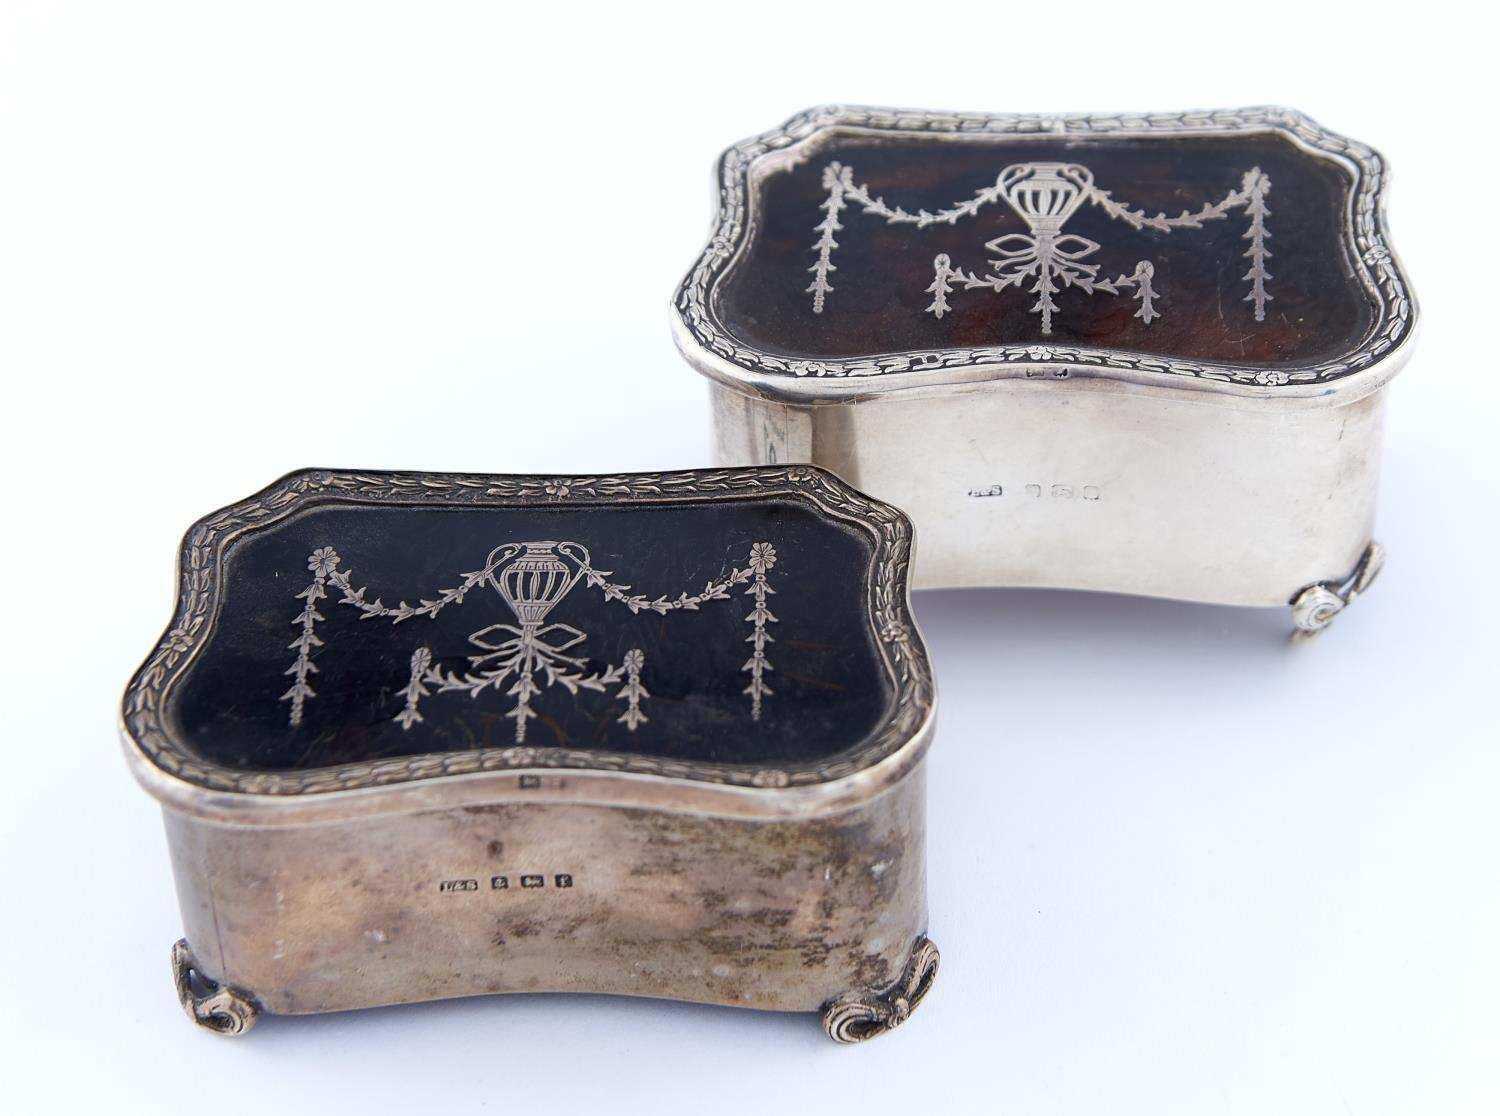 A PAIR OF EDWARD VII COMMODE SHAPED SILVER TRINKET BOXES WITH SILVER INLAID TORTOISESHELL INSET